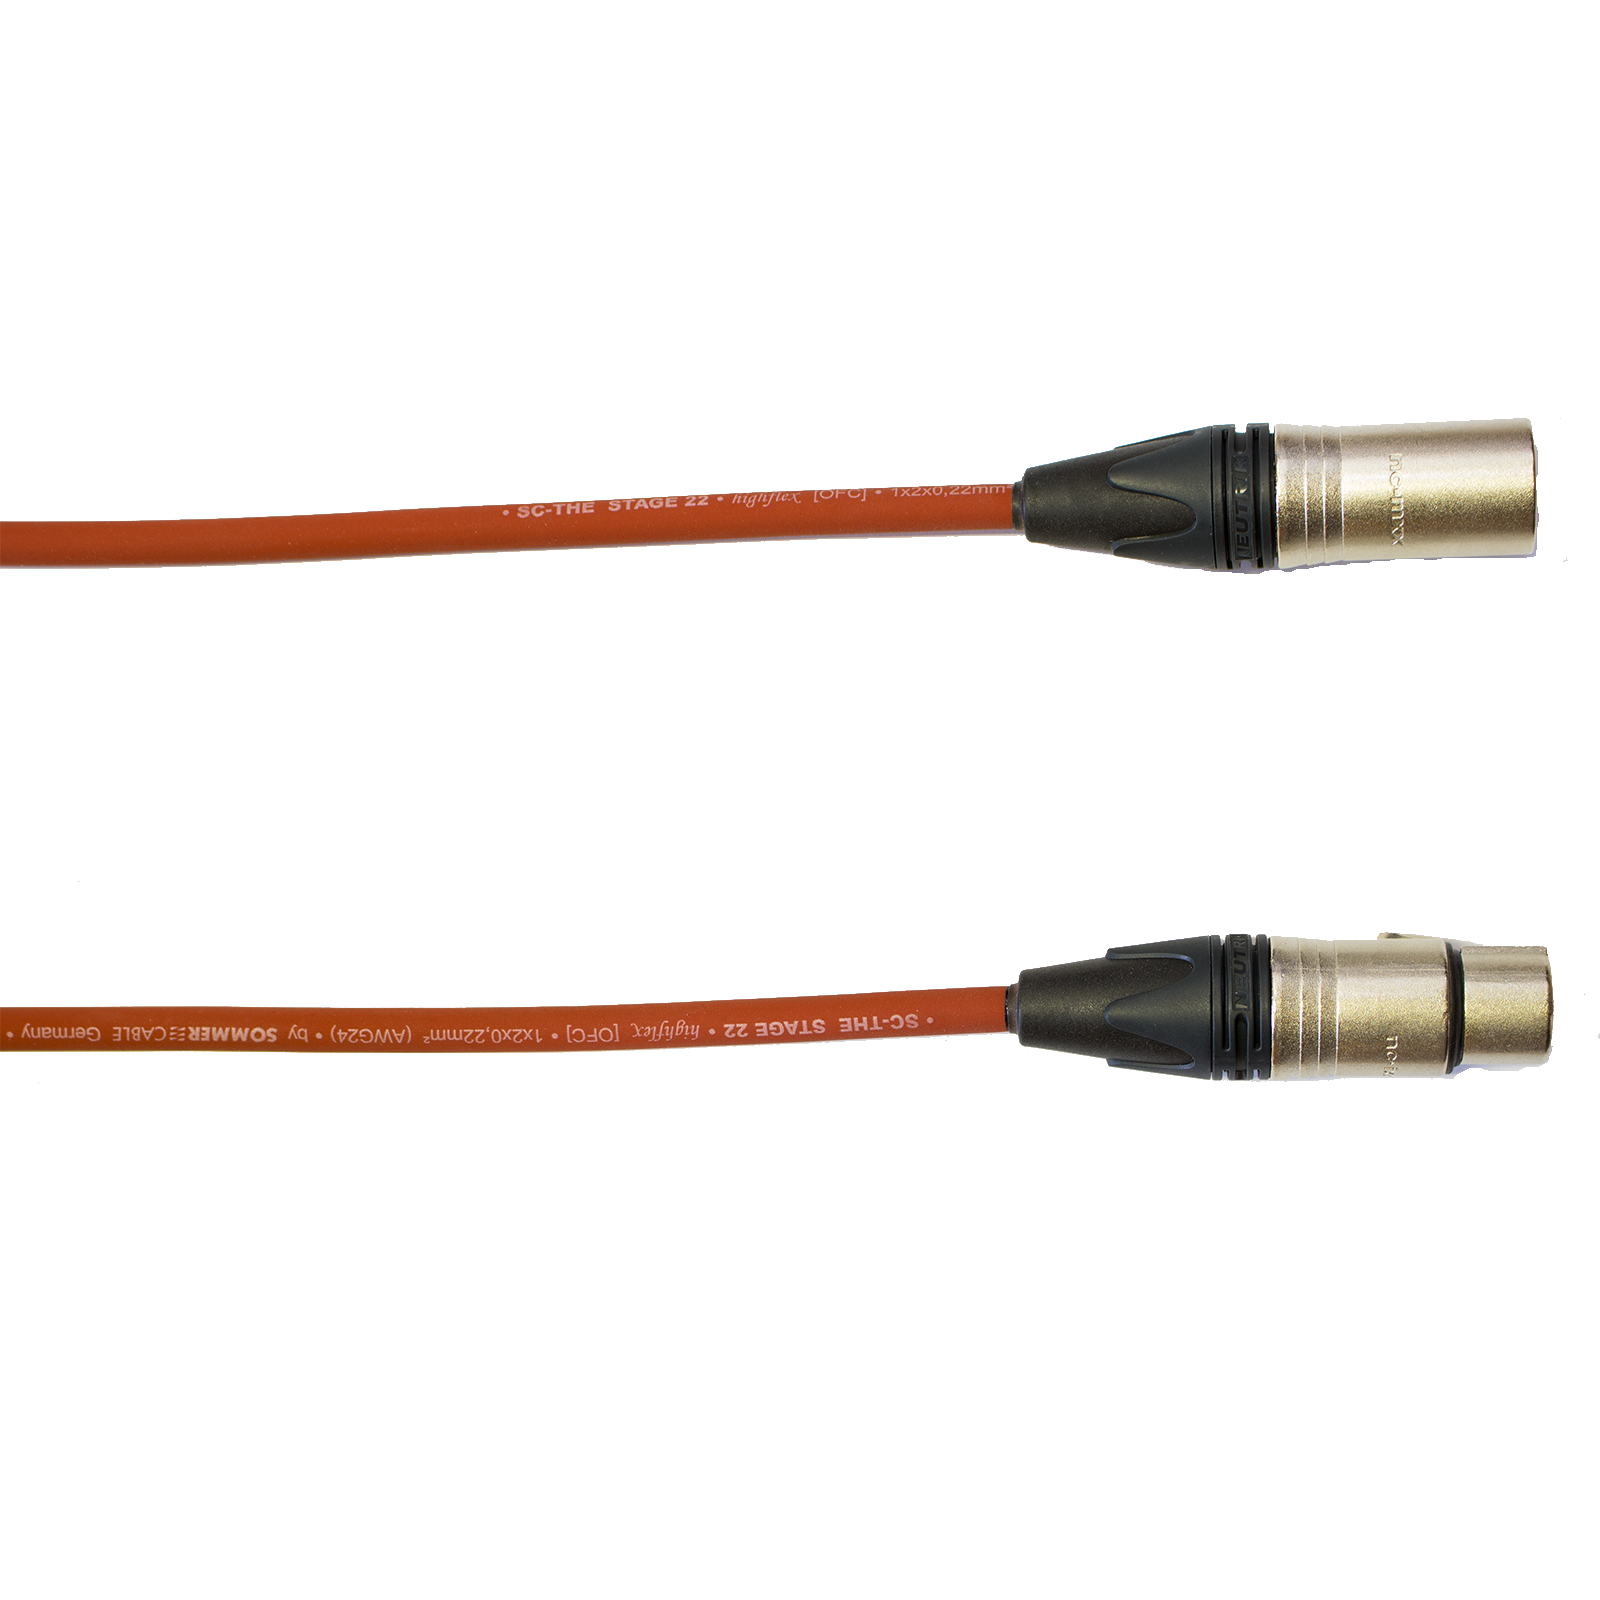 Audiokabel XLR konektor Neutrik male/female  7 m, Sommer, červený